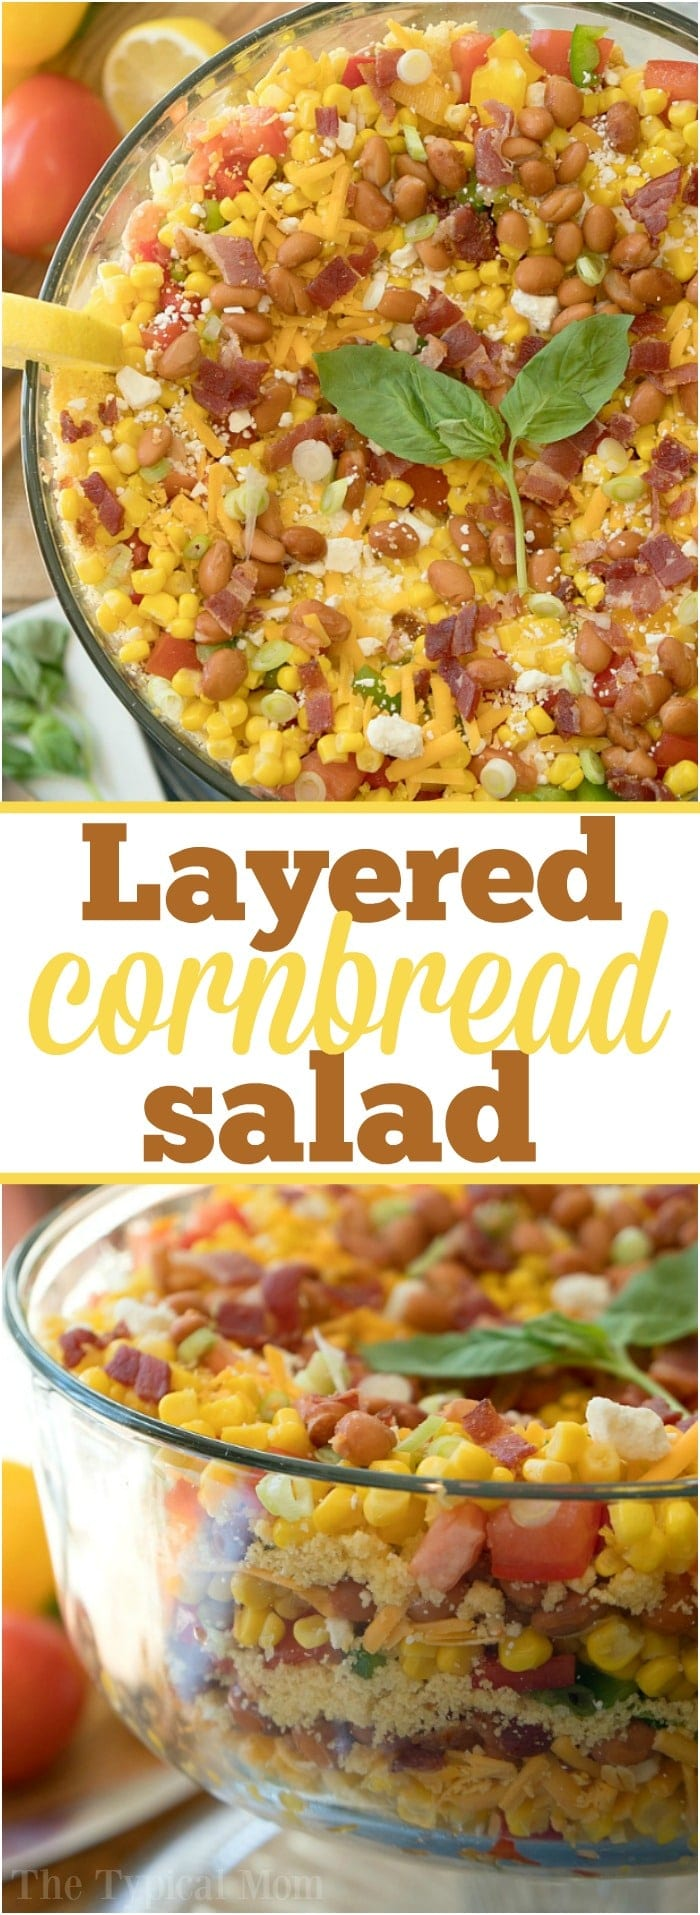 This easy layered cornbread salad recipe is a perfect side dish during the holidays or a barbecue! Layers of corn, cheese and more make it irresistible! #corn #salad #layered #cornbread #sidedish